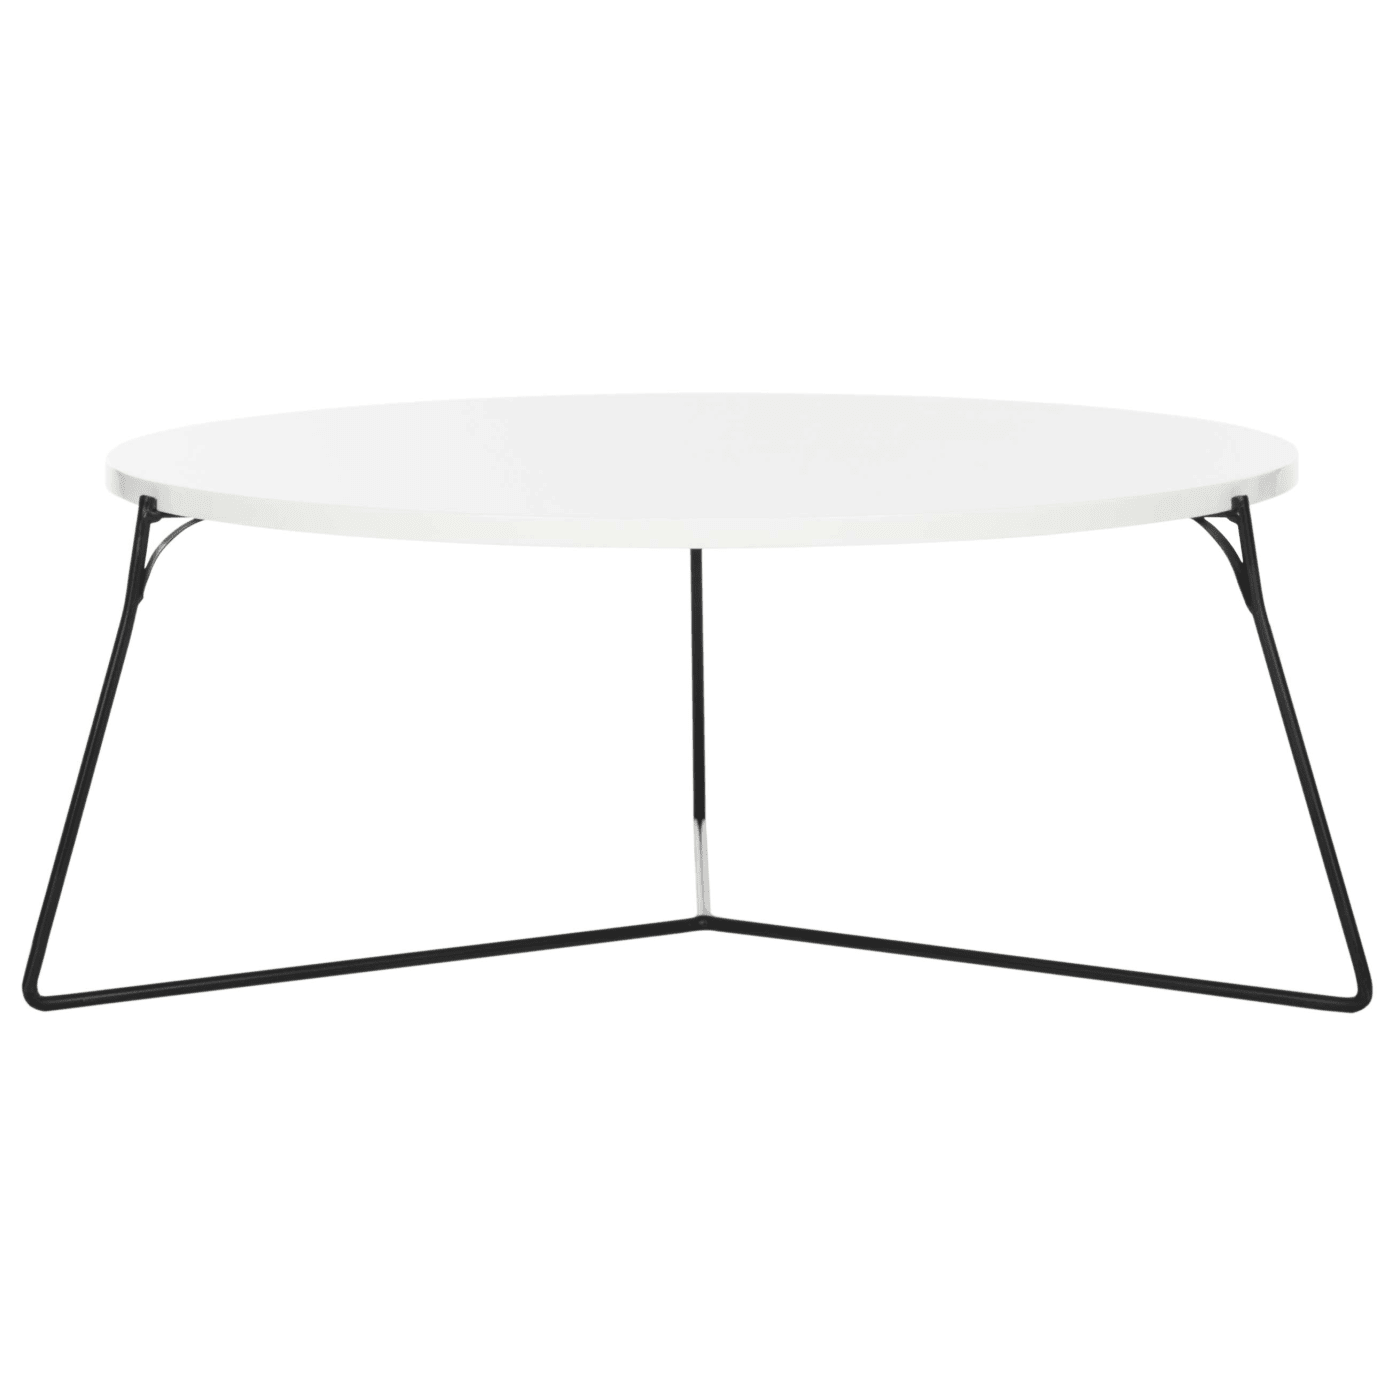 Mae White & Black Retro Mid Century Lacquer Coffee Table